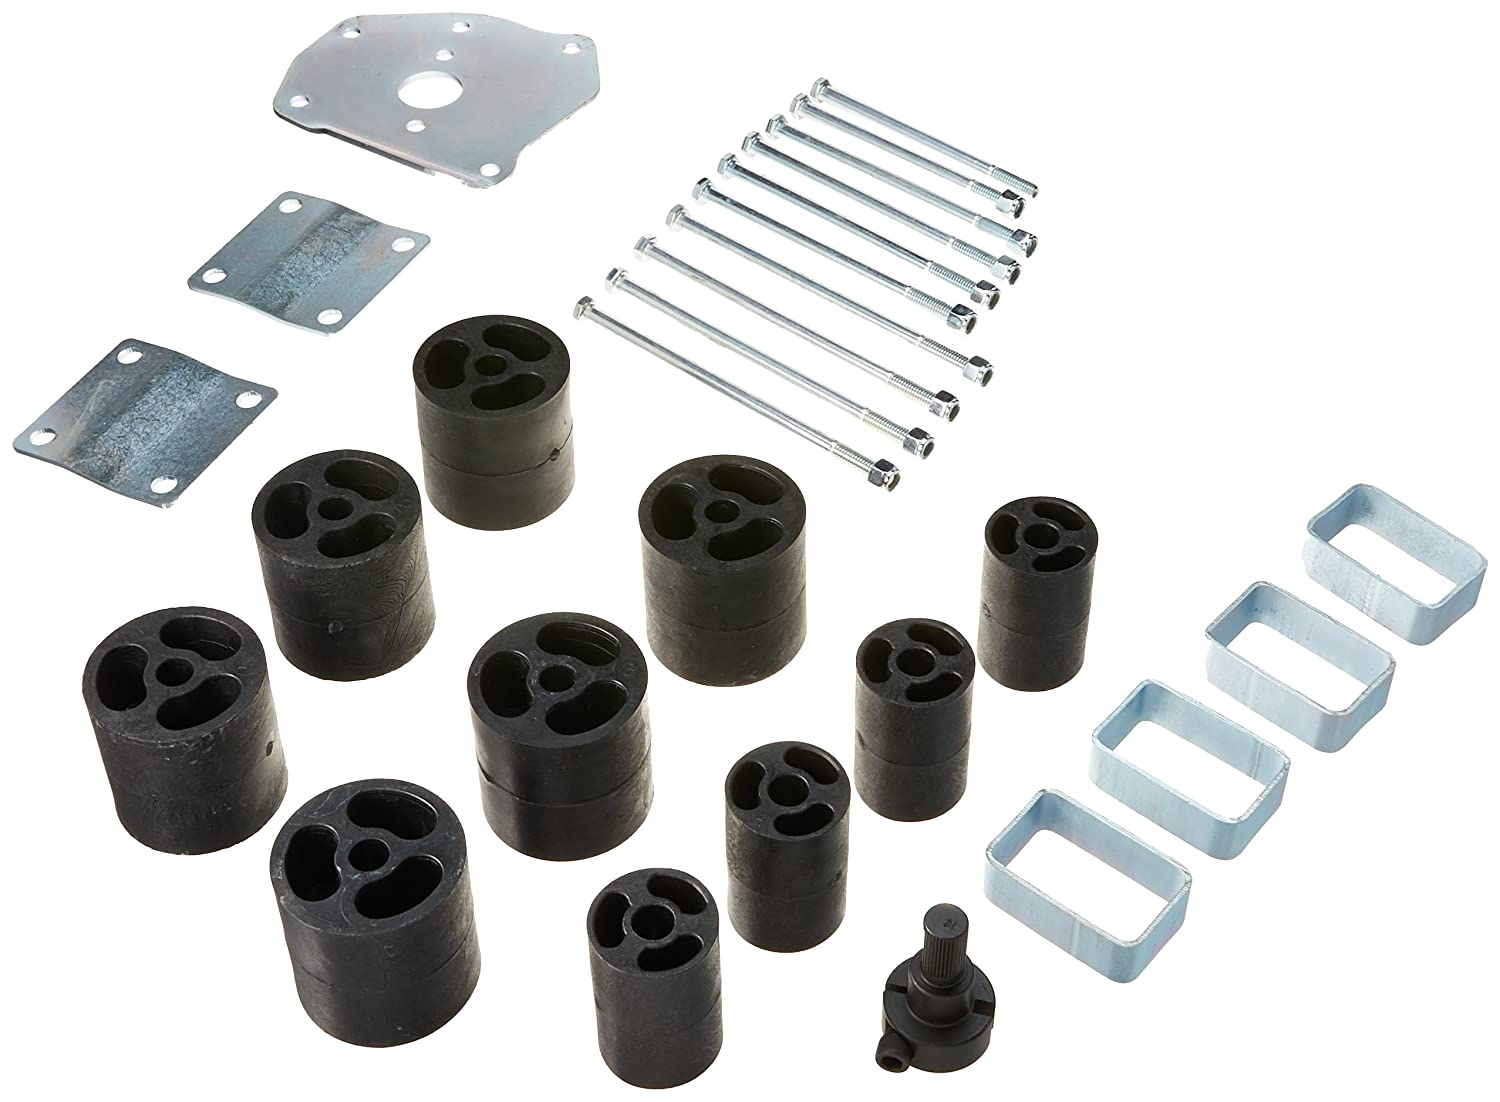 Except Auto Modified PA5513M 3 Body Lift Kit Made in America Performance Accessories Toyota 4 Runner 4WD Manual fits 1990 to 1995